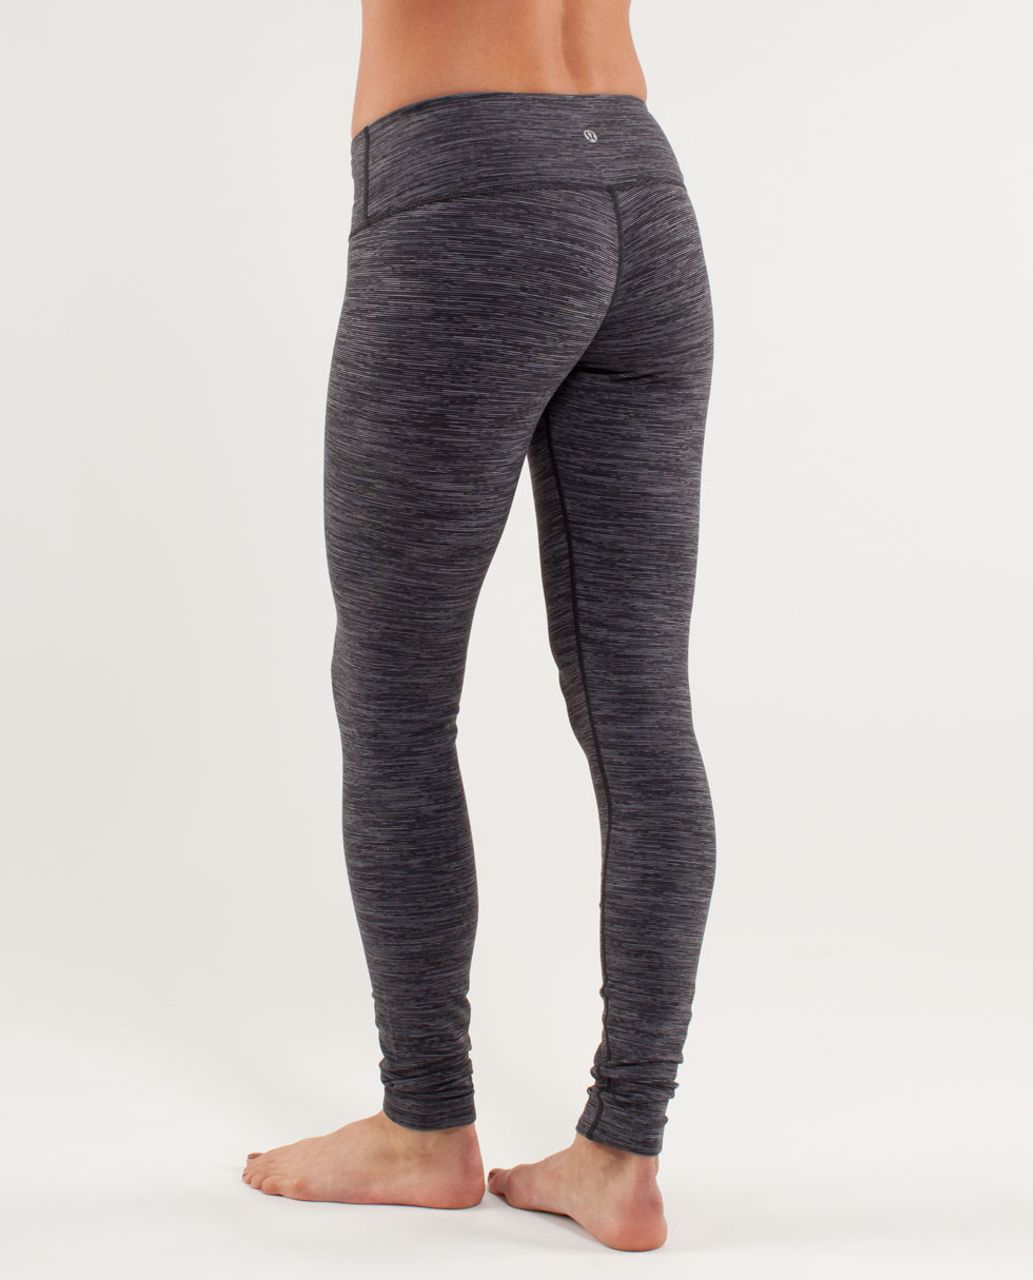 Lululemon Wunder Under Pant - Wee Are From Space Black Combo